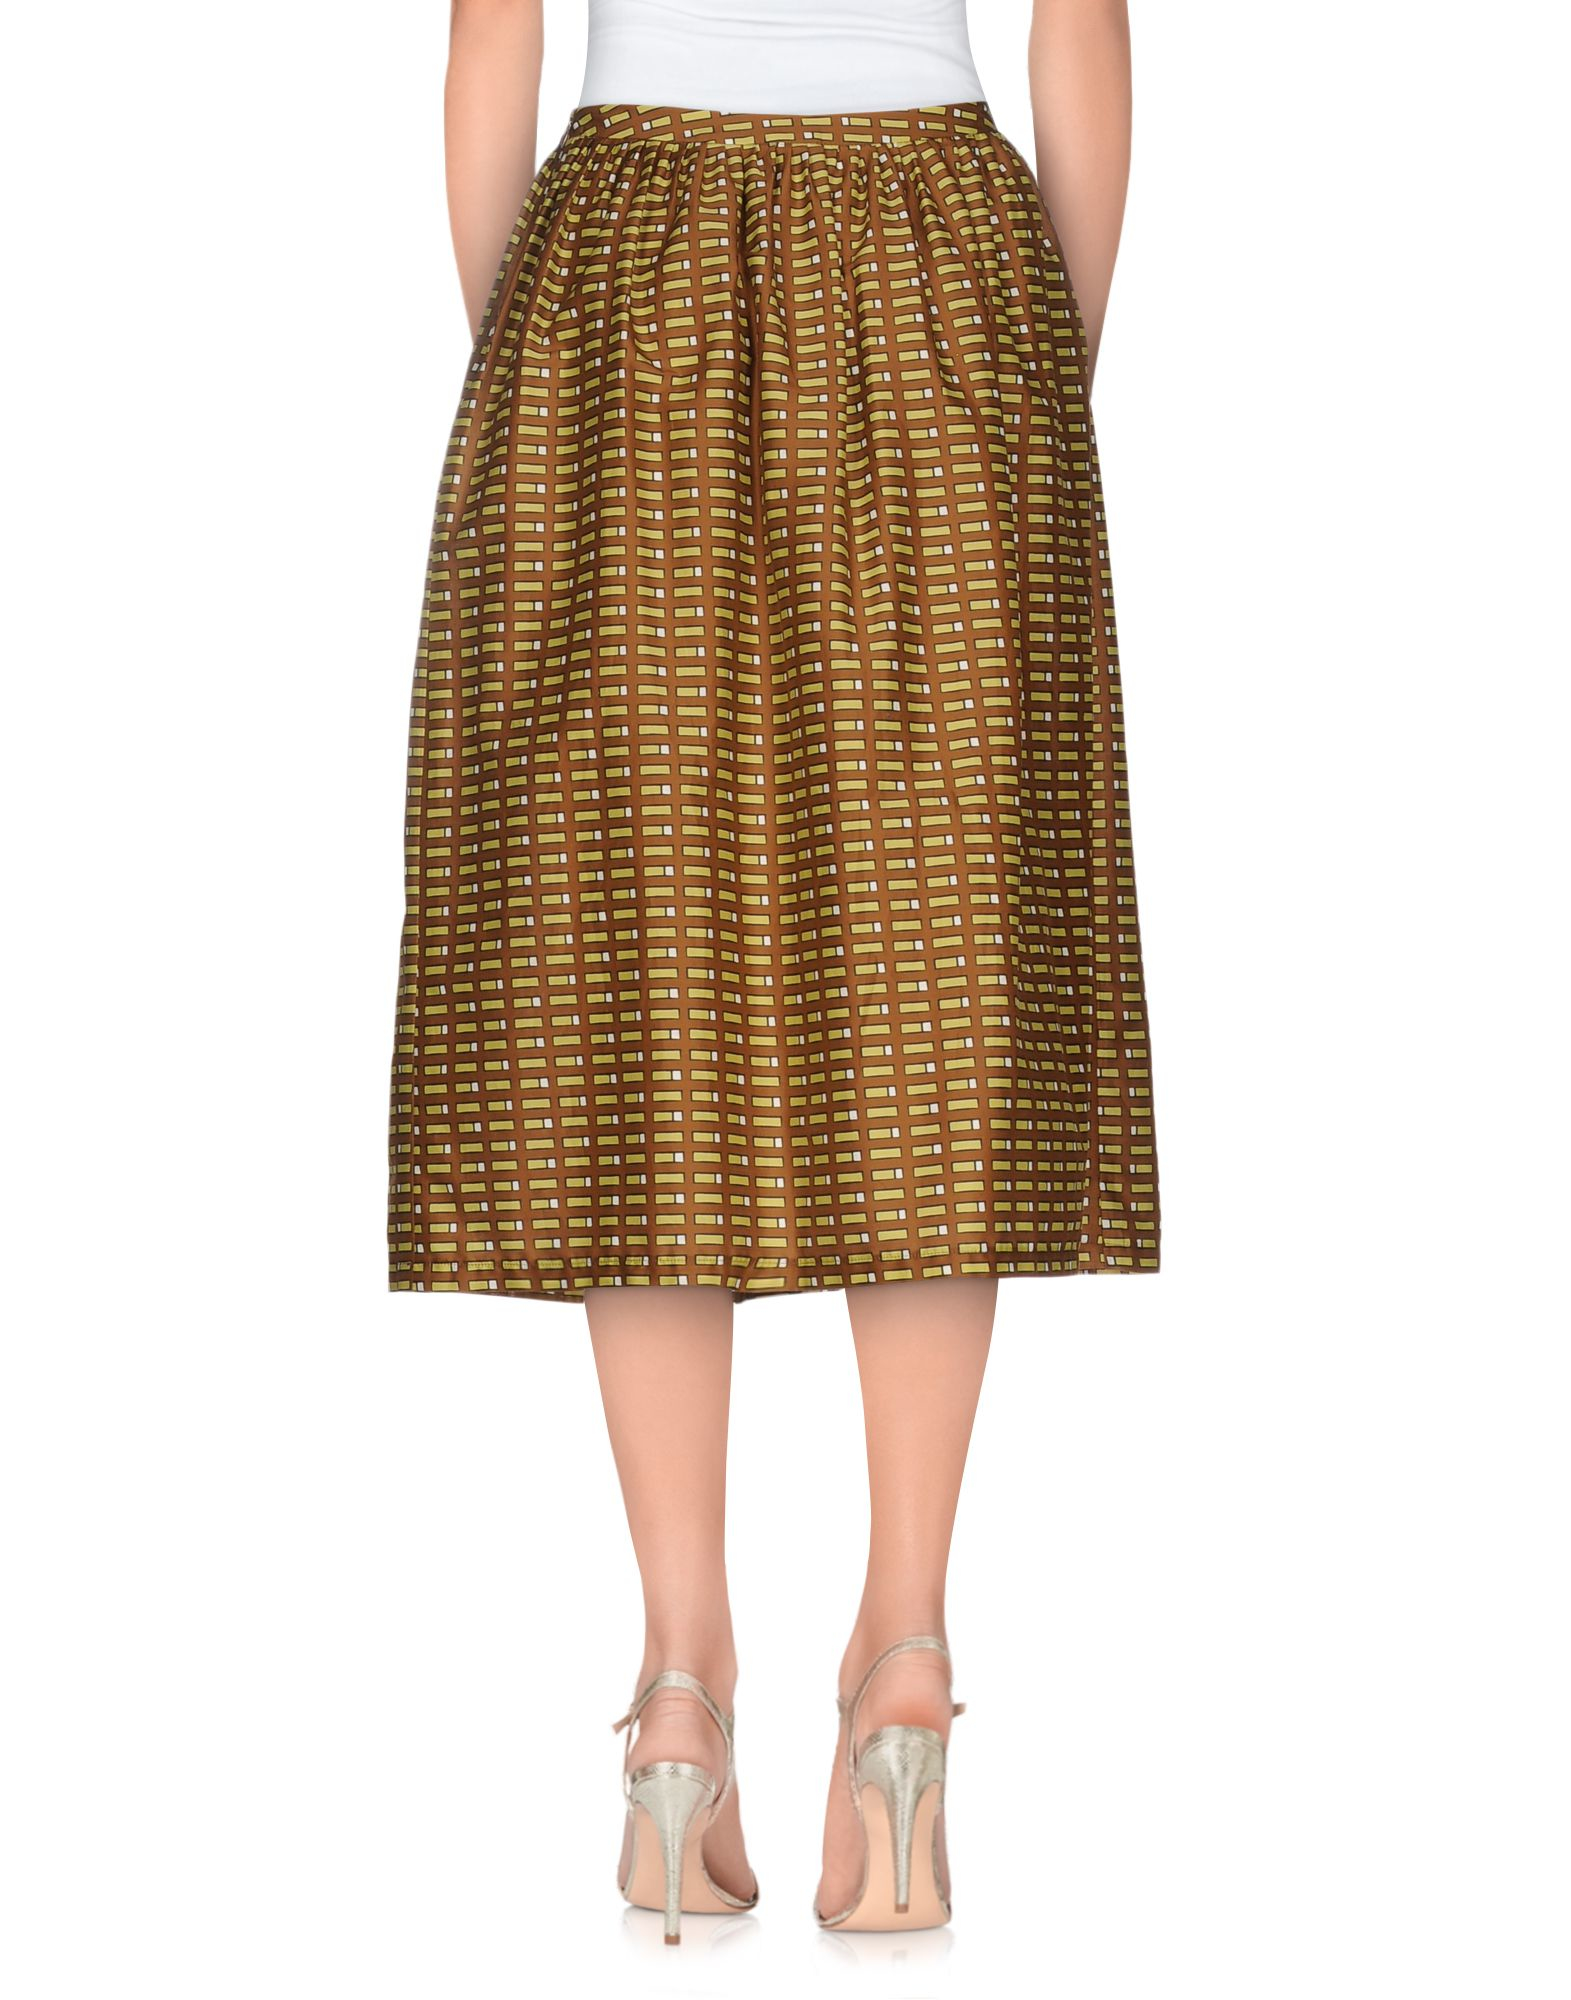 Lyst laura urbinati 3 4 length skirt in brown for 20 34 35 dress shirts